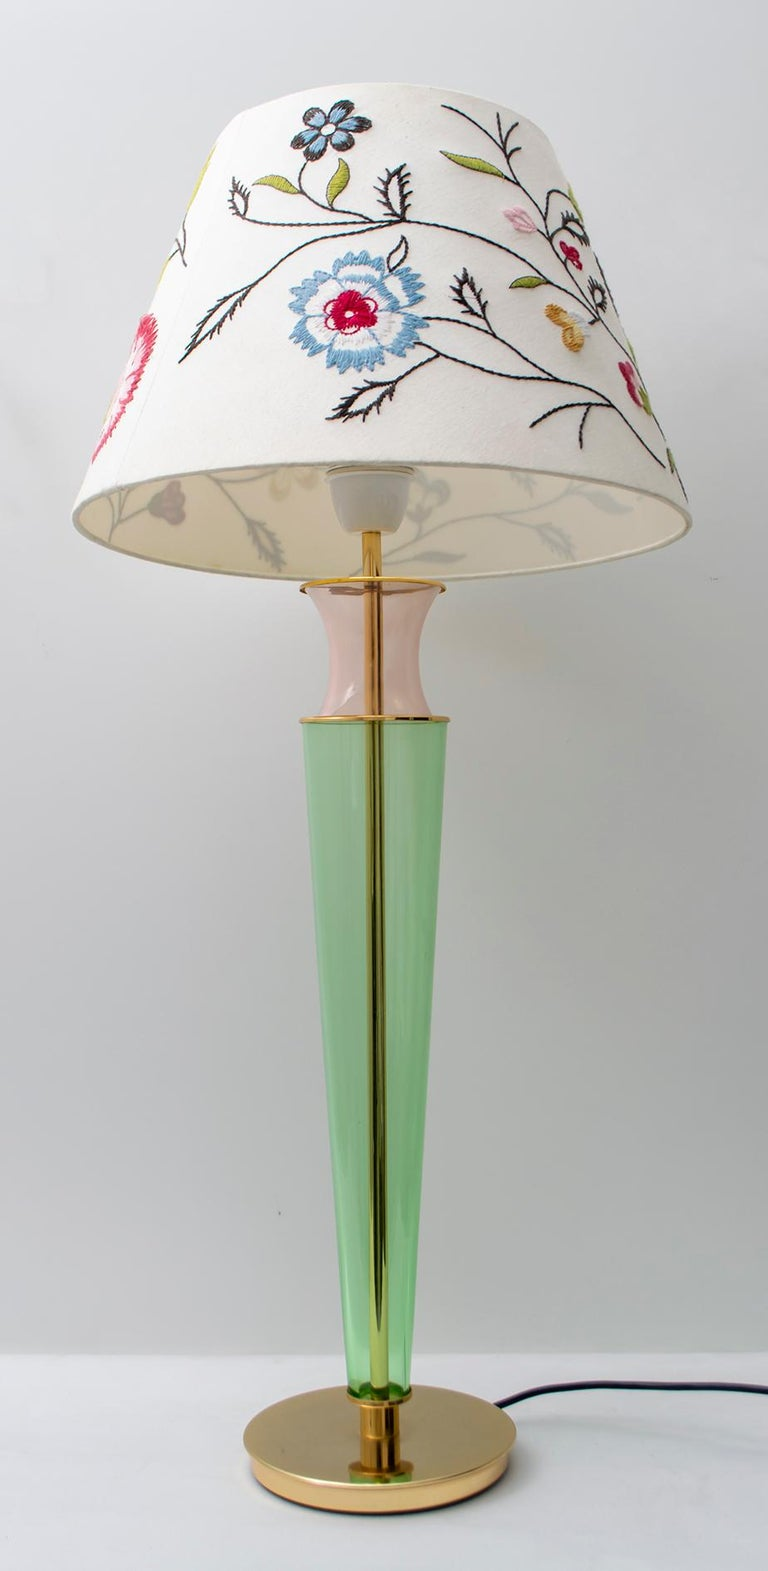 Modern Italian Murano Brass and Blown Glass Table Lamp, 1980s For Sale 1